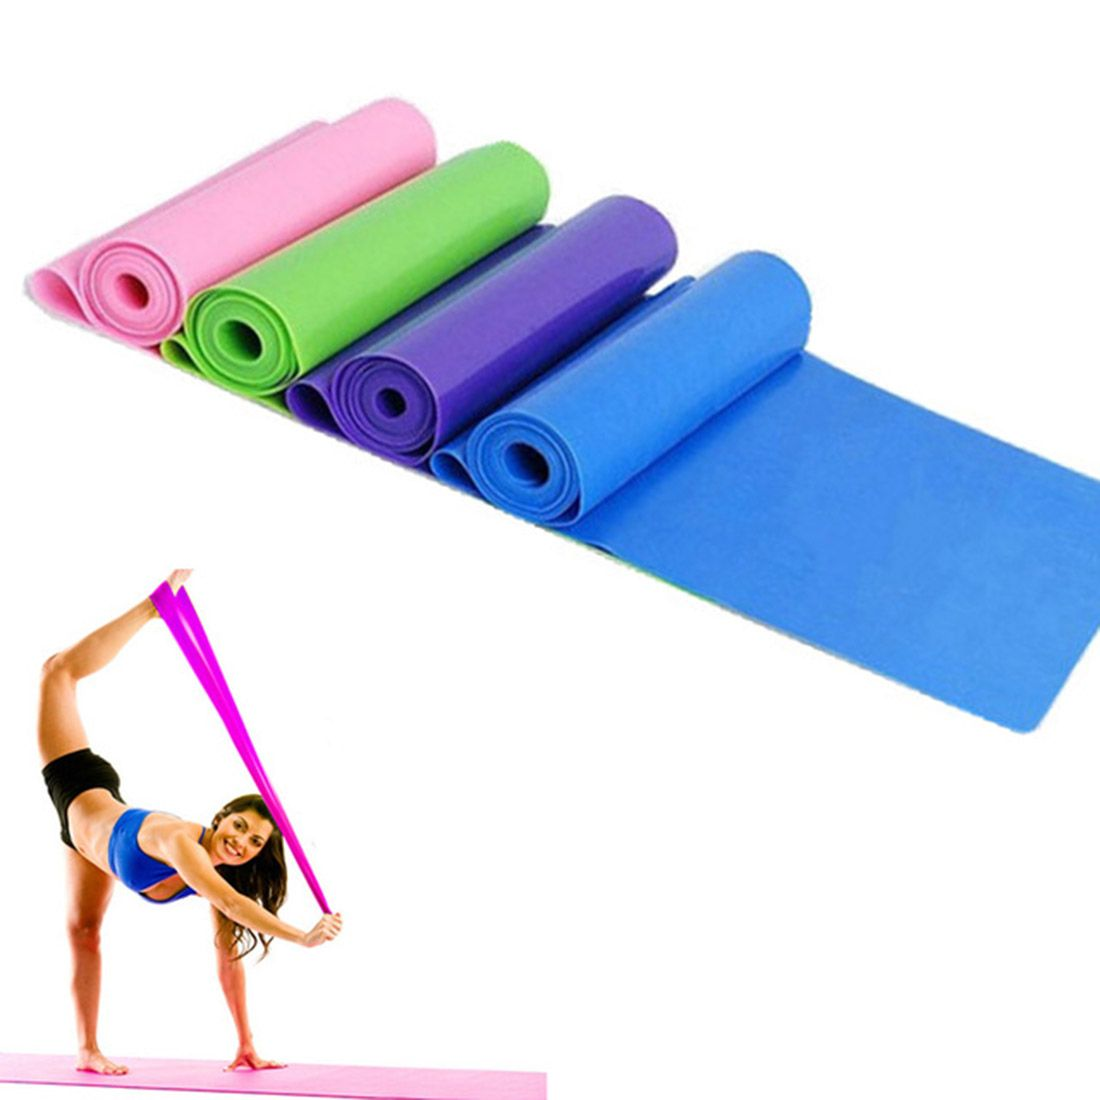 1.5m Yoga Pilates Stretch Resistance Bands Workout Elastic Exercise Training Rubber elastic bands for fitness